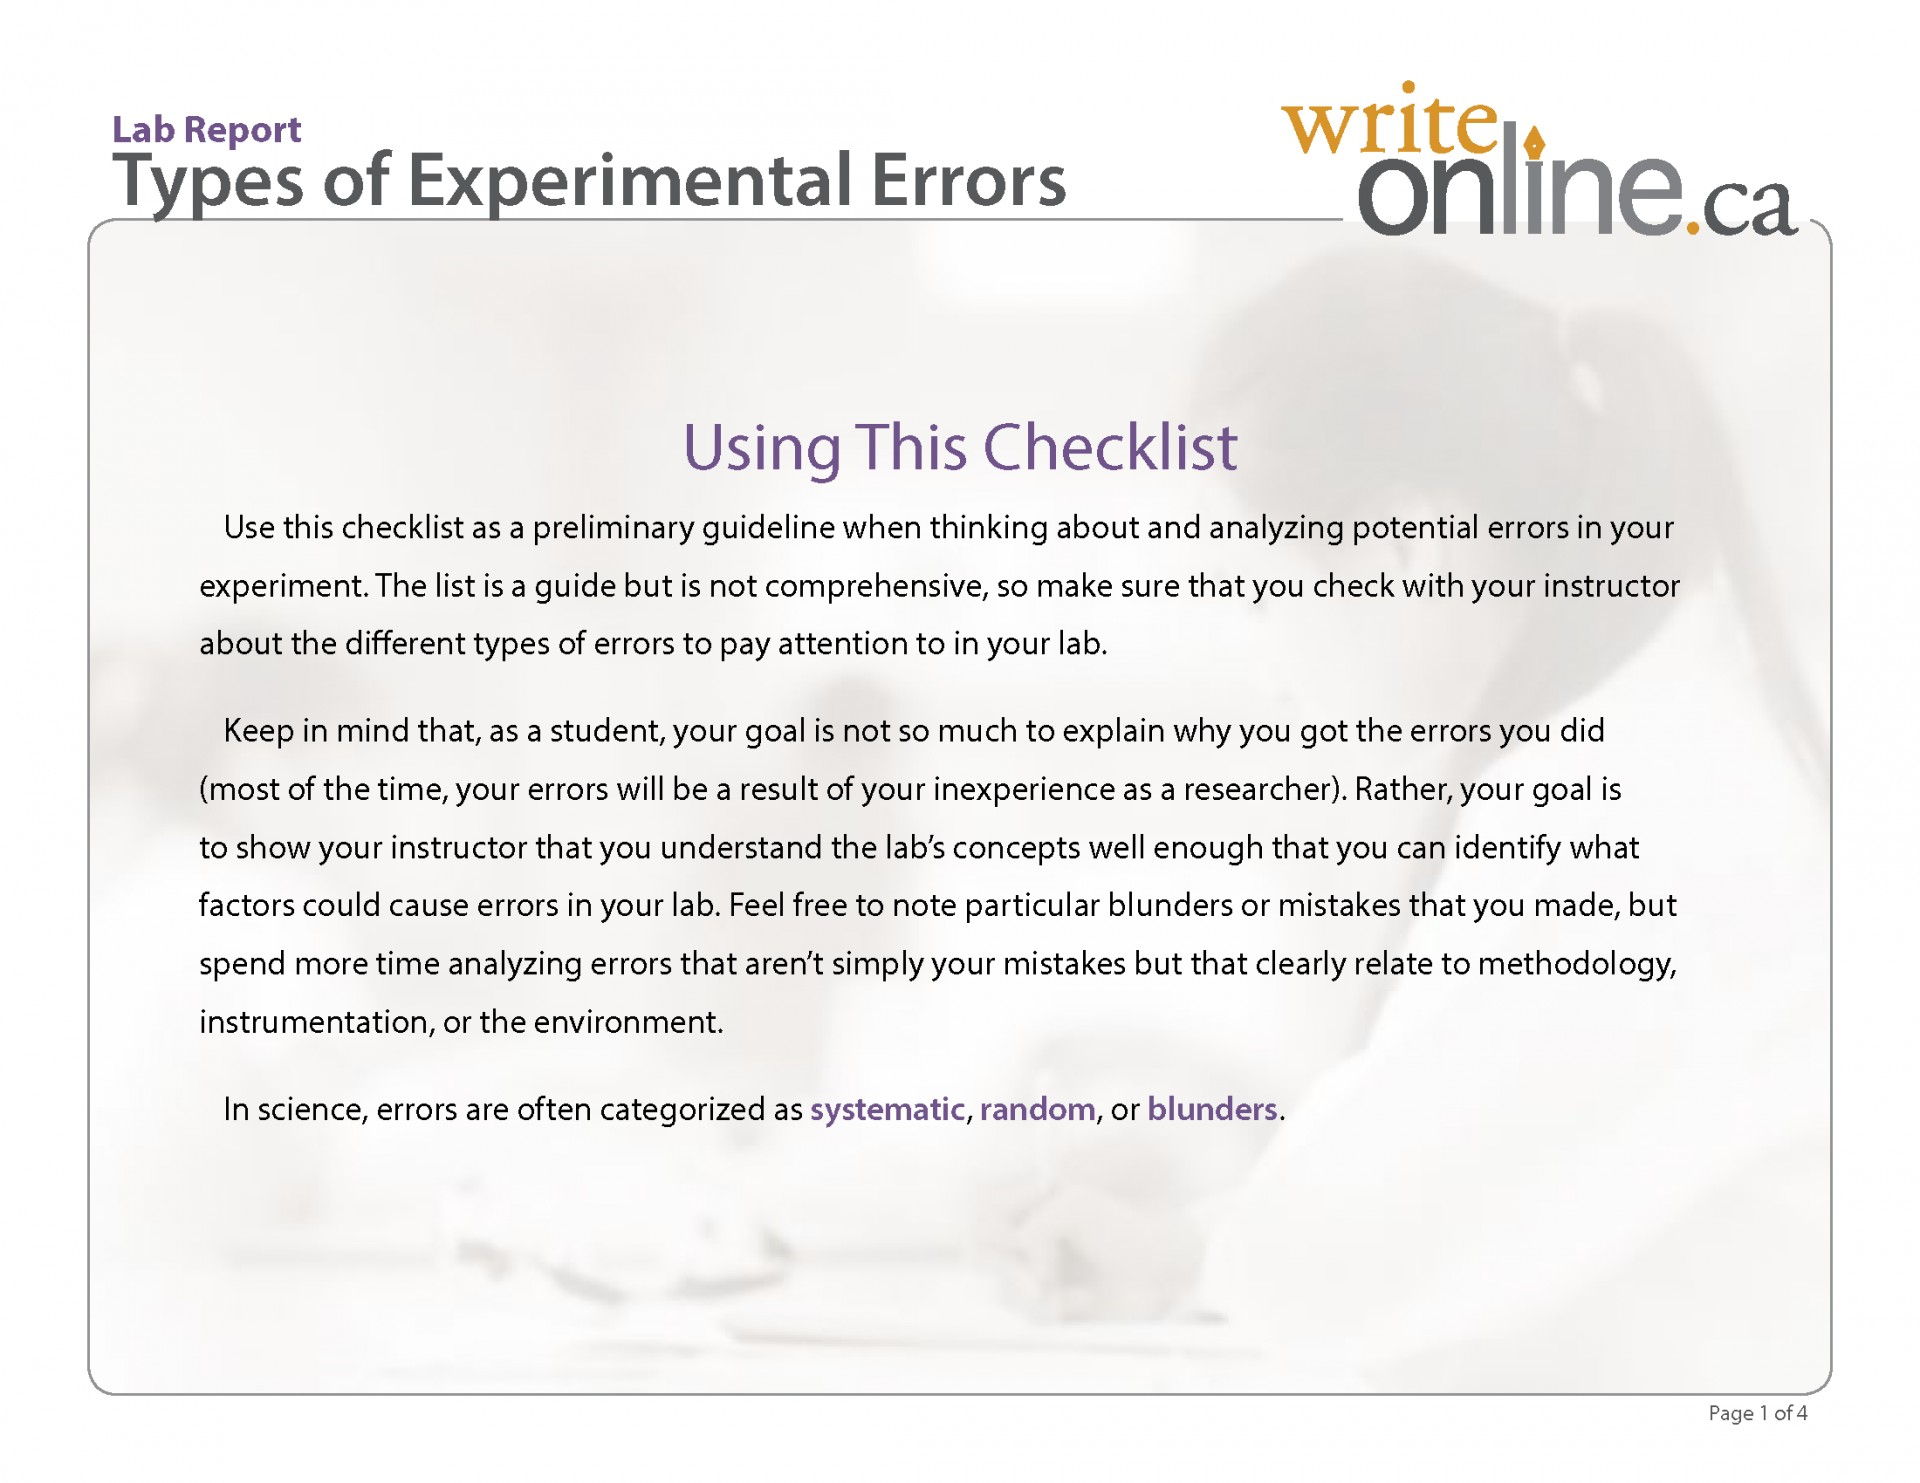 017 Research Paper Labreport Typesofexperimentalerrors Page 1 How Do U End Unique A 1920